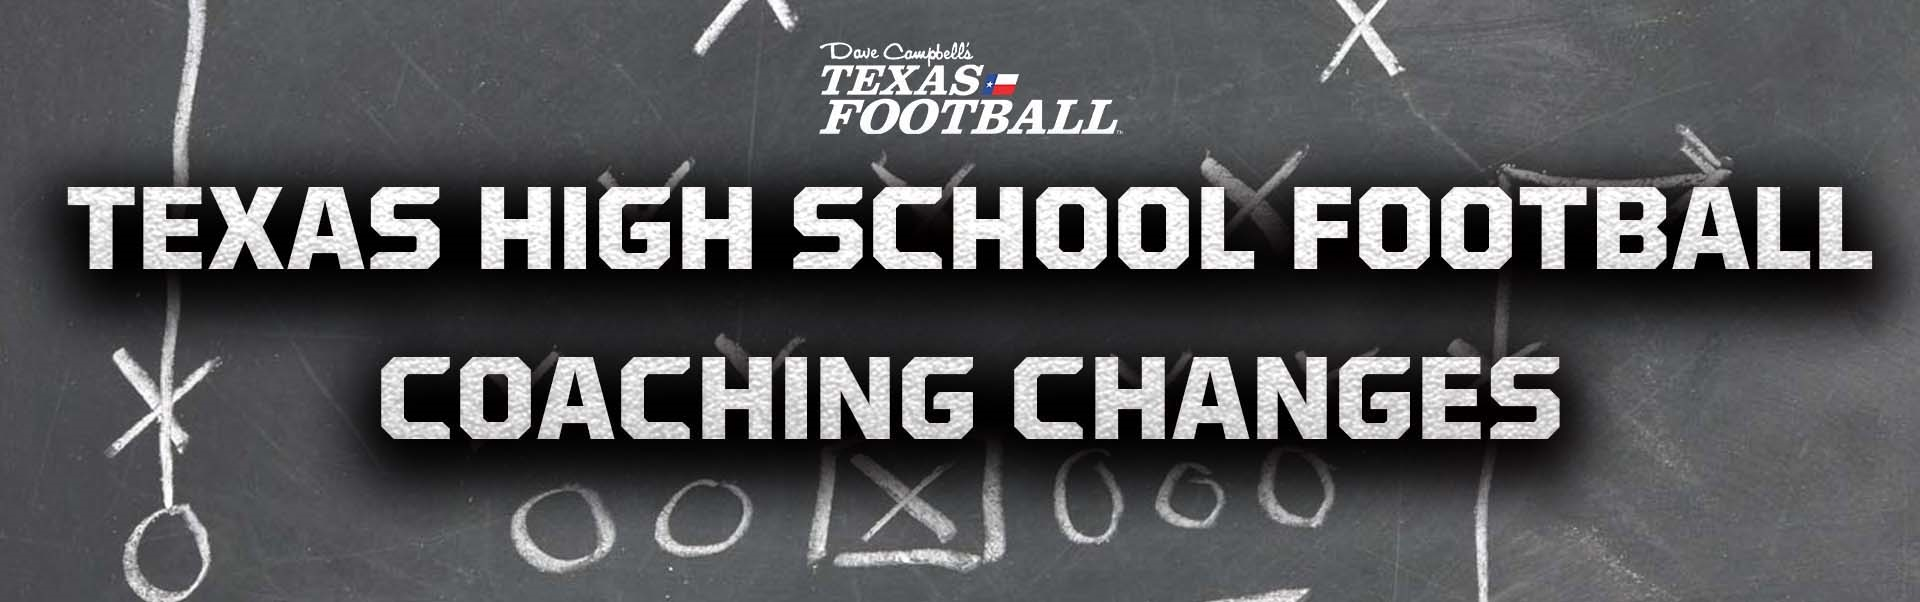 Texas High School Football Coaching Changes